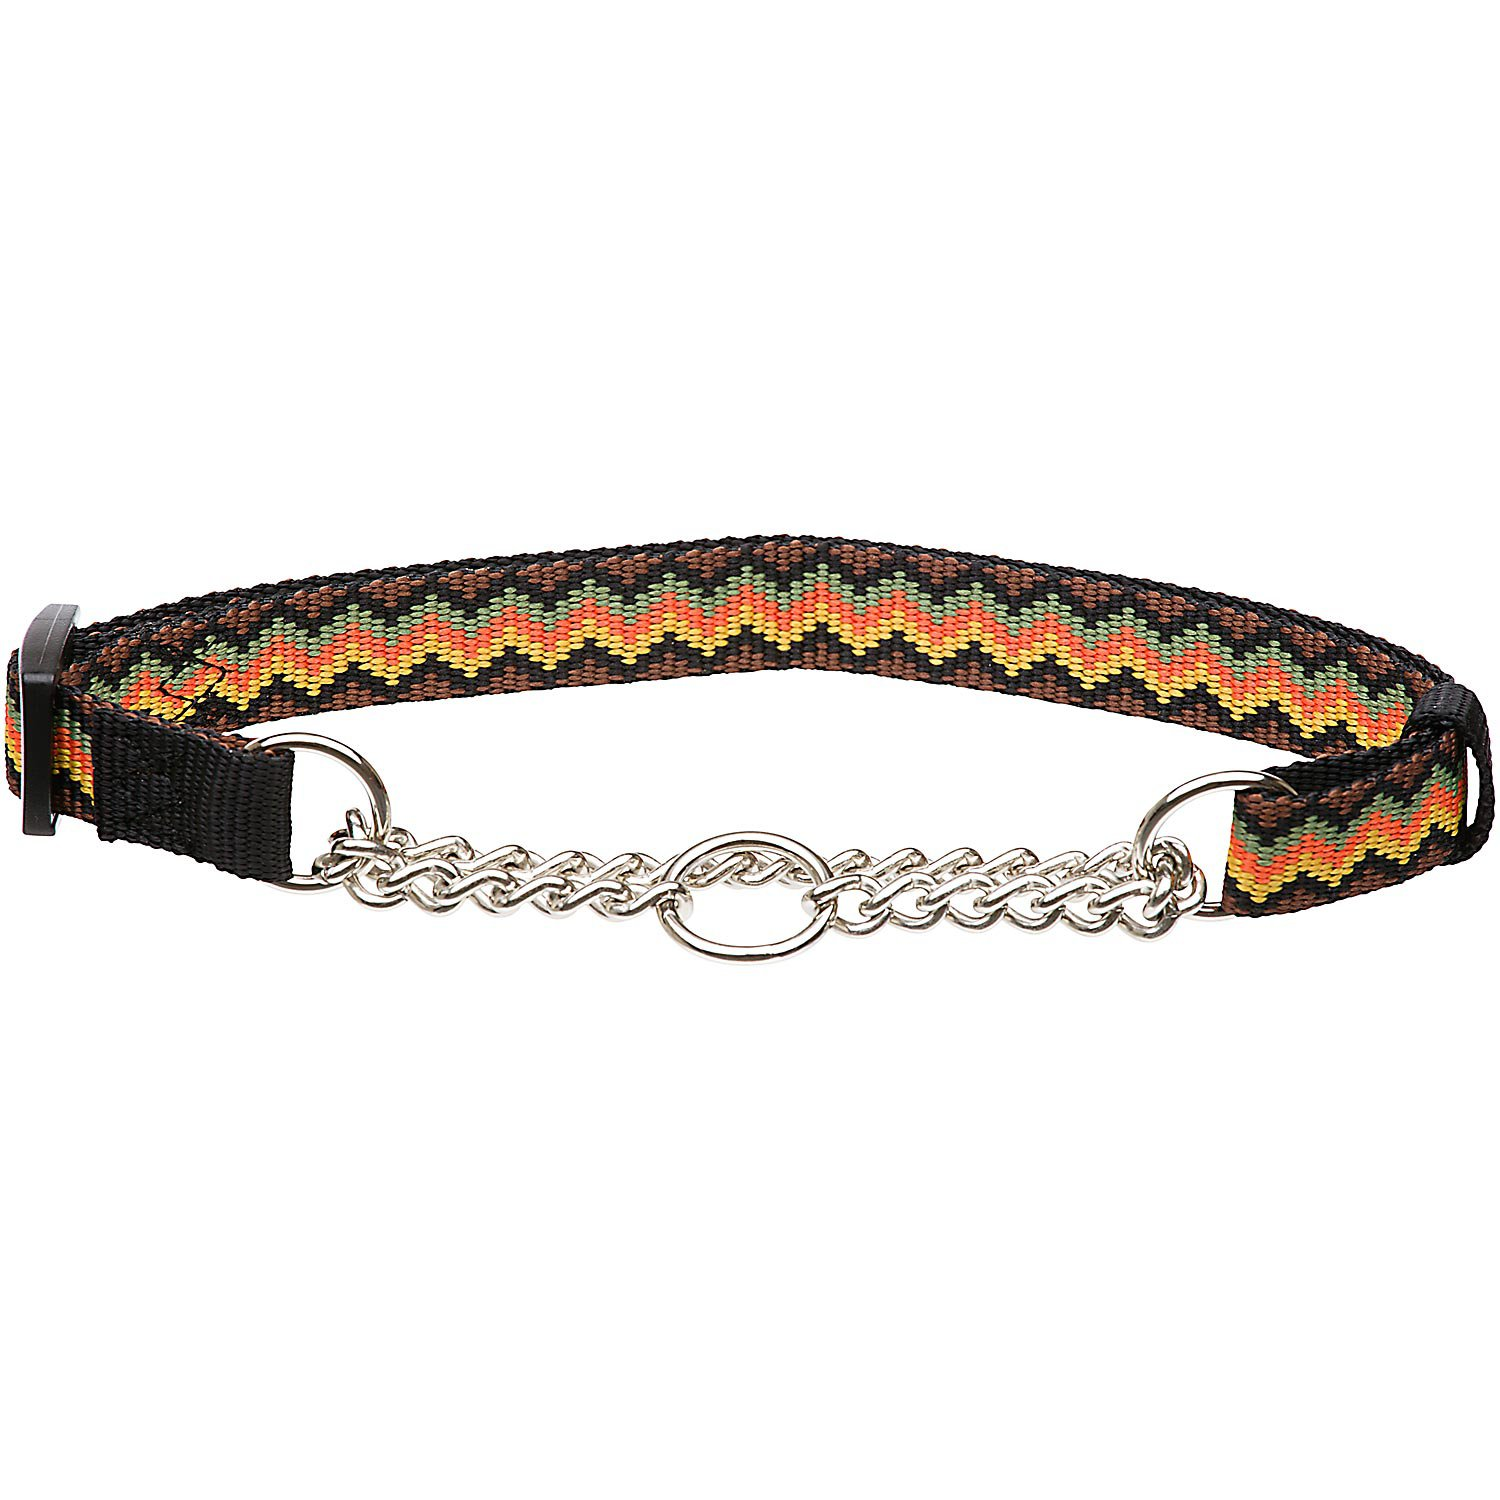 Hamilton Zigzag Pattern Martingale Dog Collar